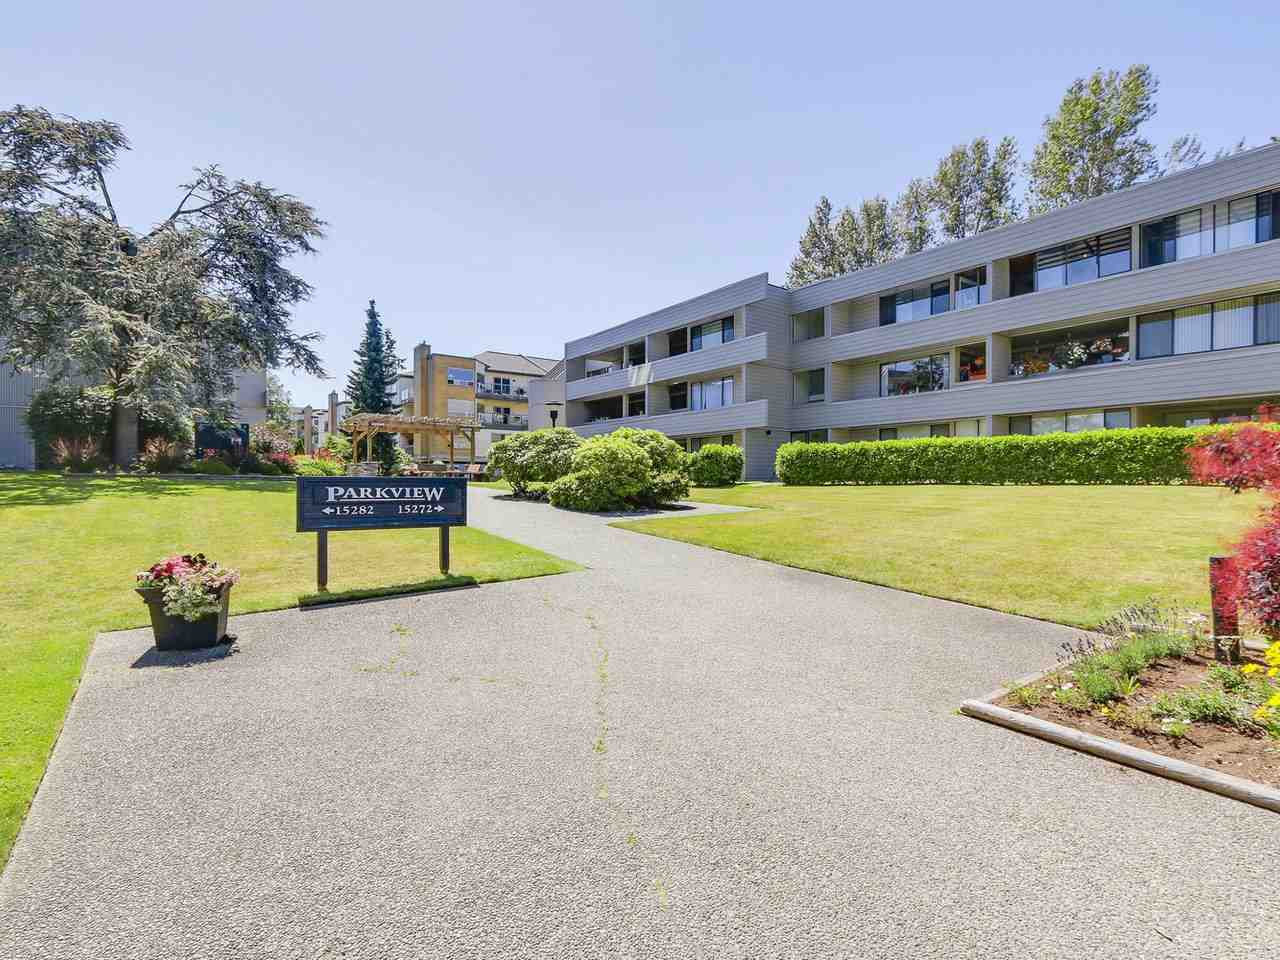 """Main Photo: 107 15272 19 Avenue in Surrey: King George Corridor Condo for sale in """"PARKVIEW"""" (South Surrey White Rock)  : MLS®# R2183797"""